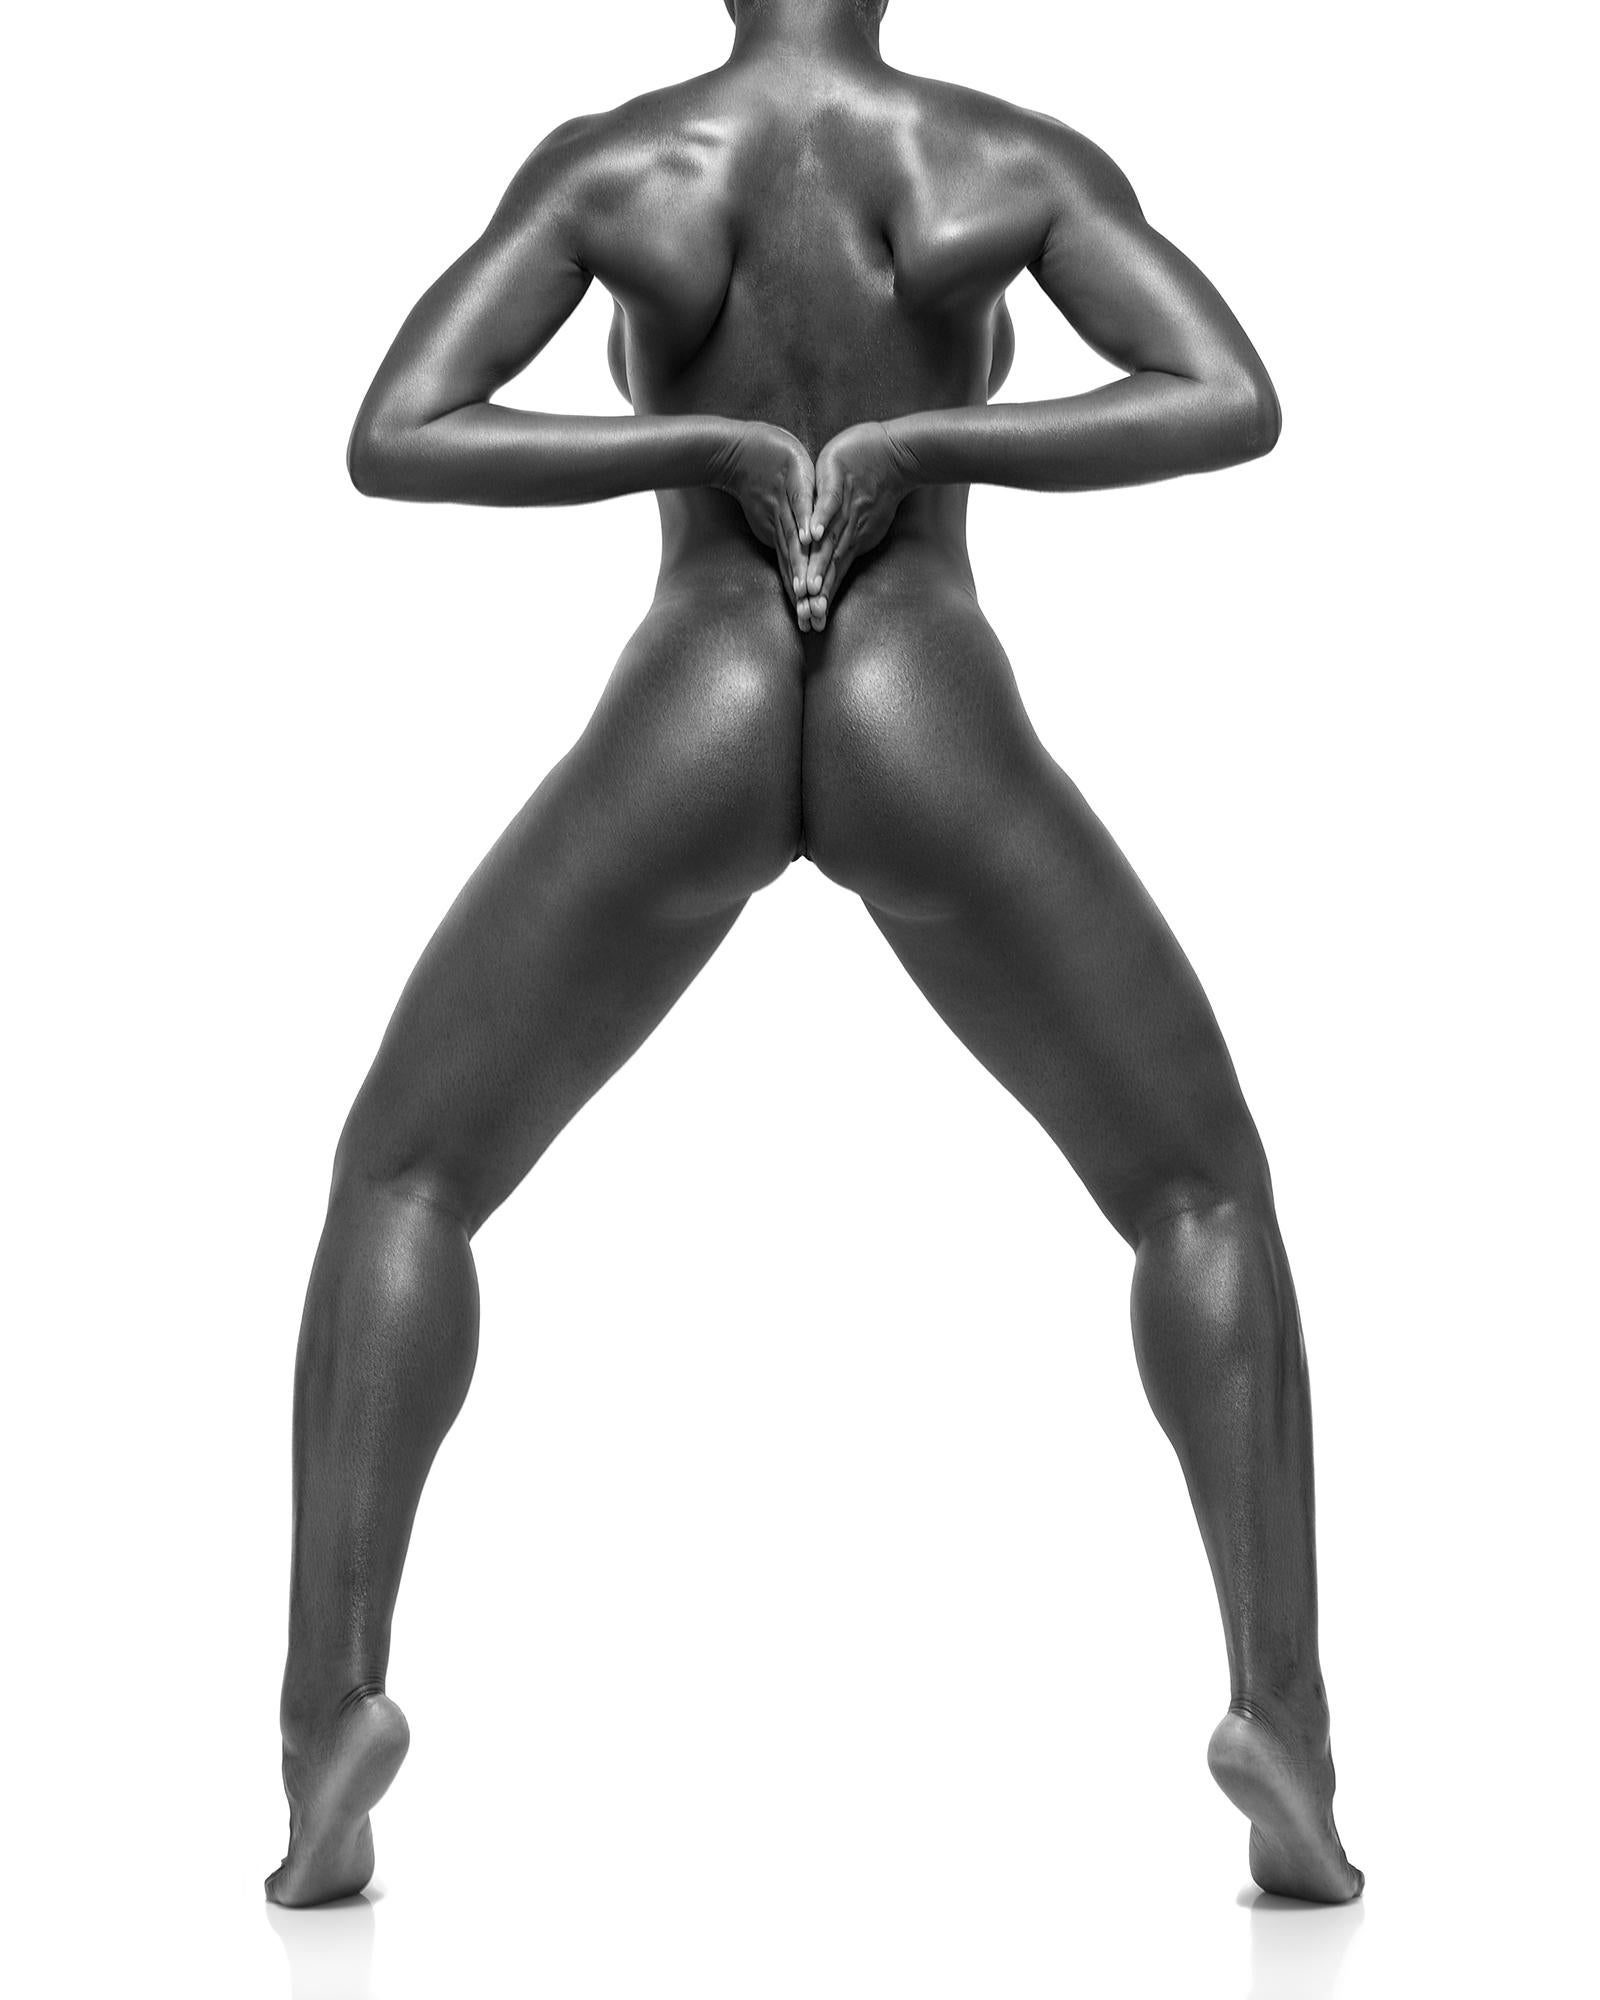 Afua's Backside II, 21st century, contemporary, photography